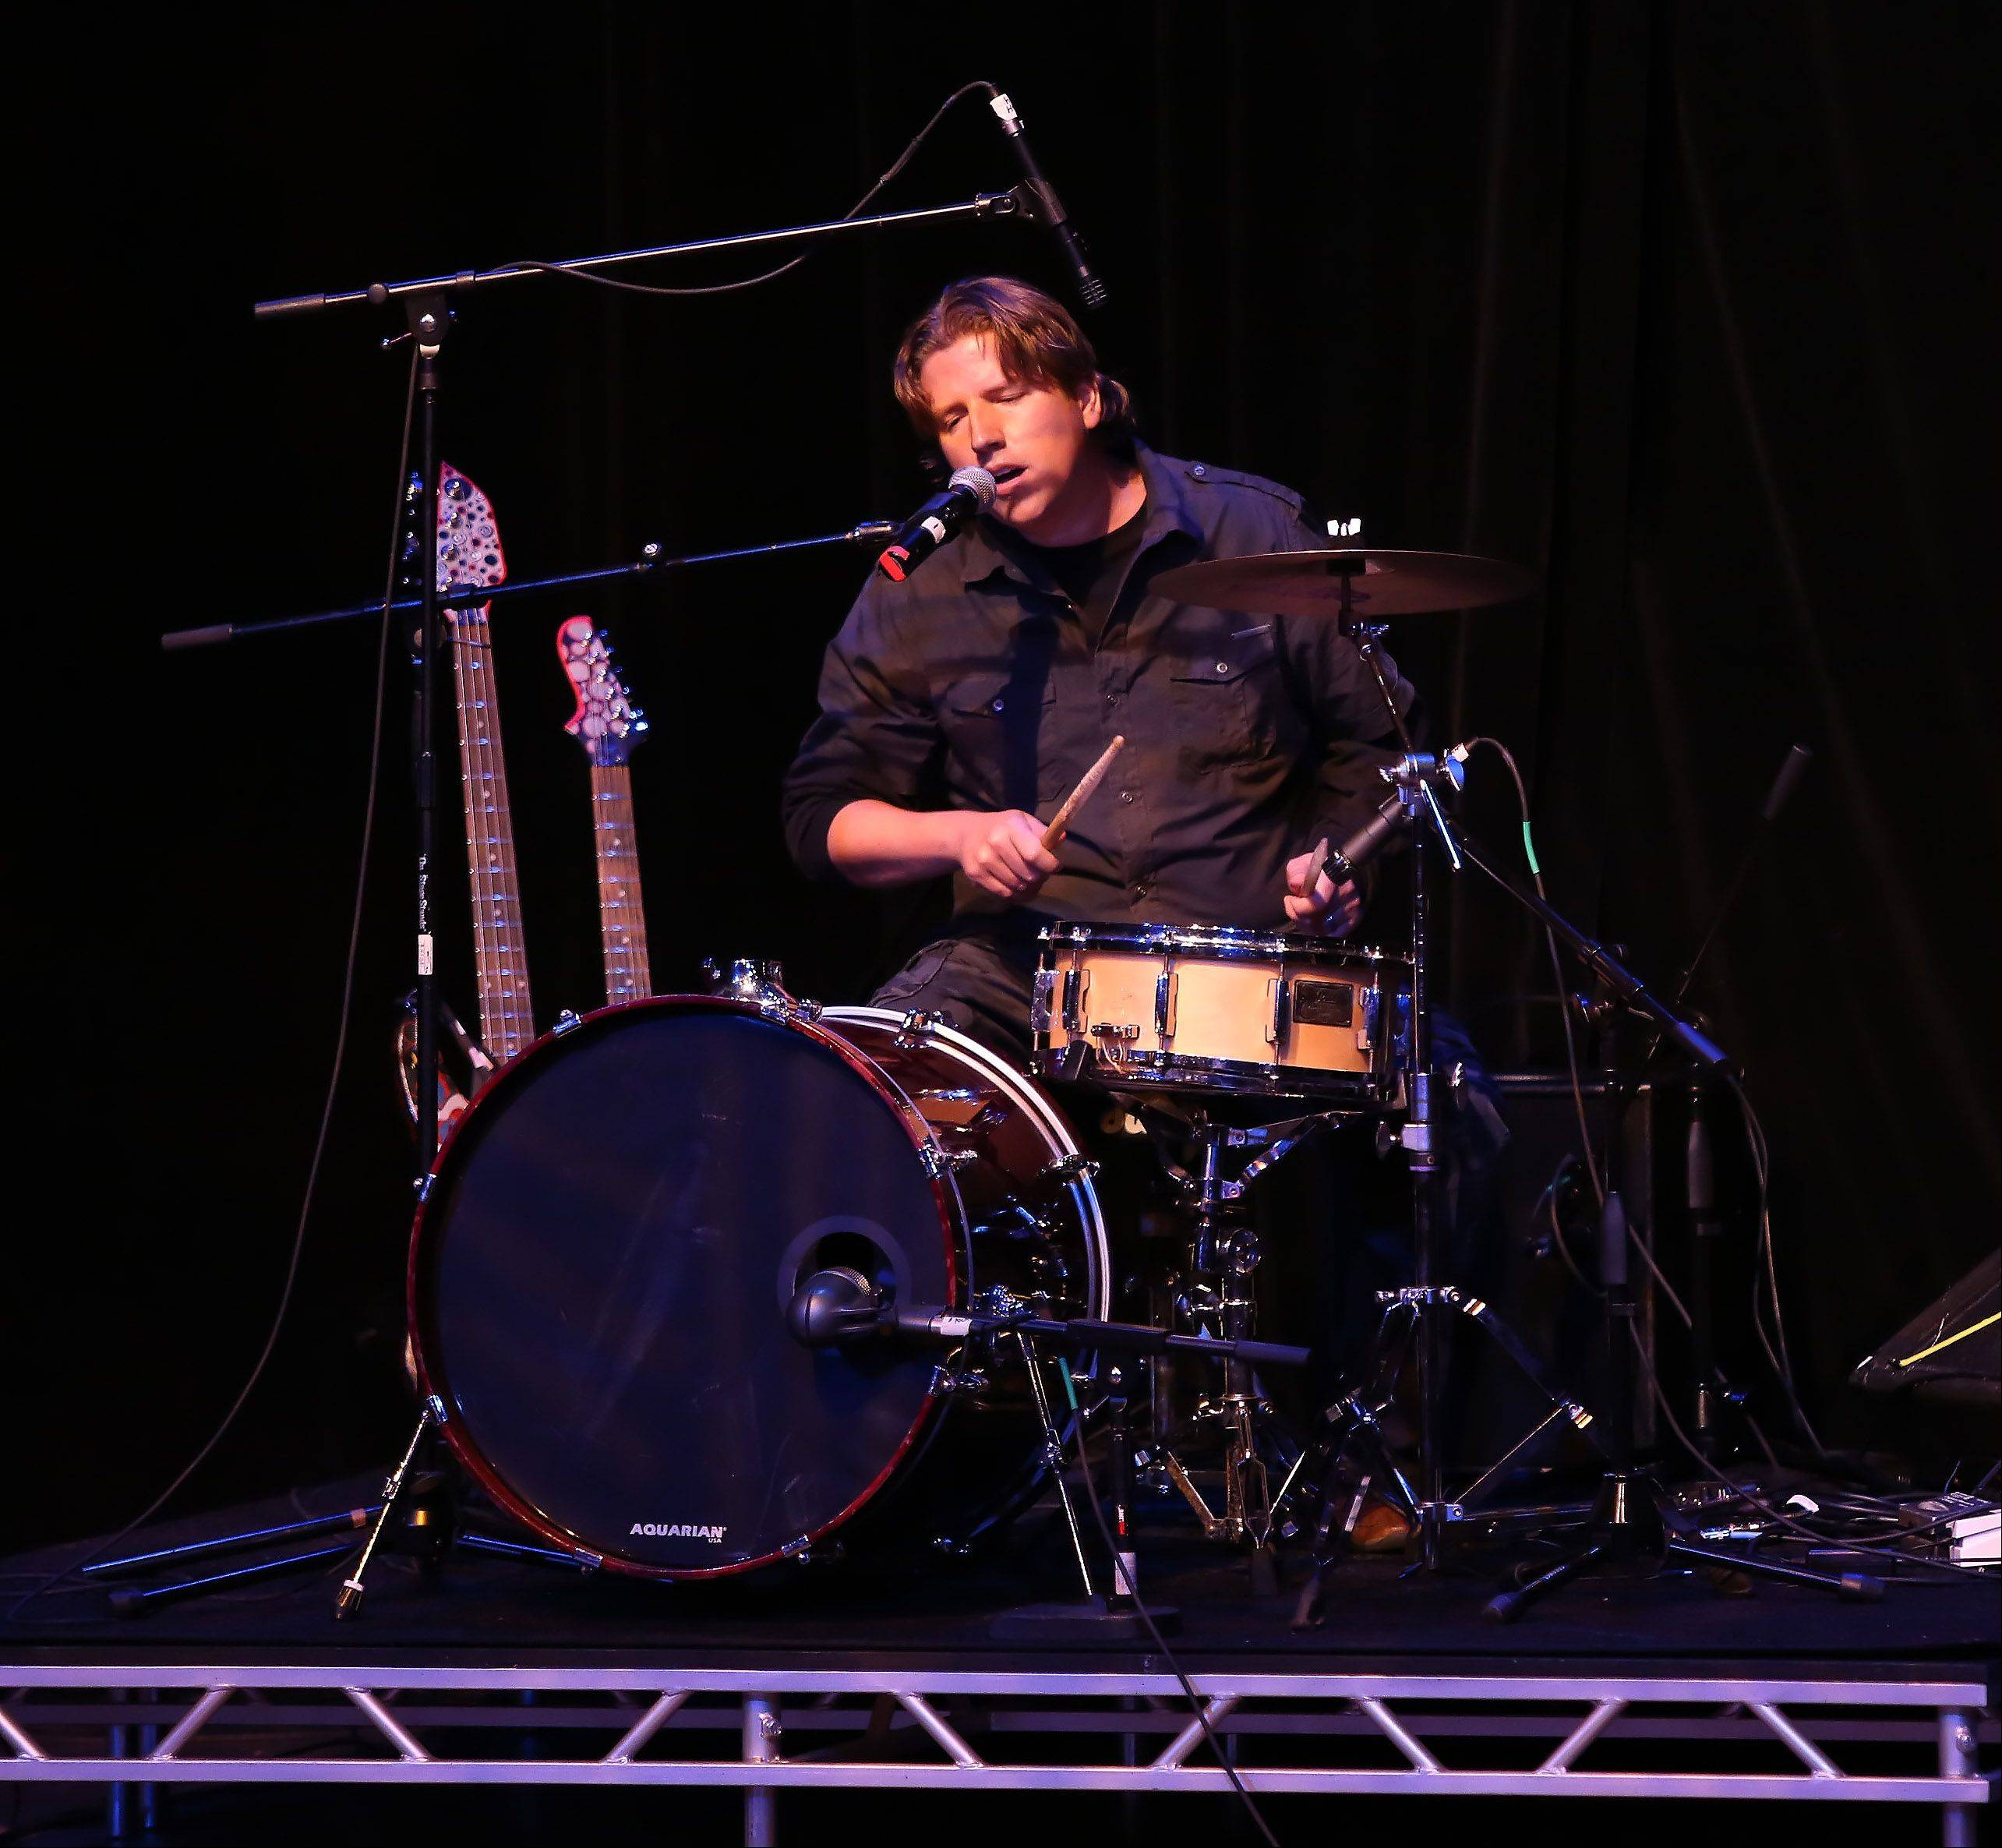 Dave Siemiaszko of Wheeling plays drums and guitar during Suburban Chicago's Got Talent competition Sunday night at the Metropolis Performing Arts Centre in Arlington Heights. The summer long talent contest is presented by the Daily Herald and sponsored by the Arlington Heights Chamber of Commerce.